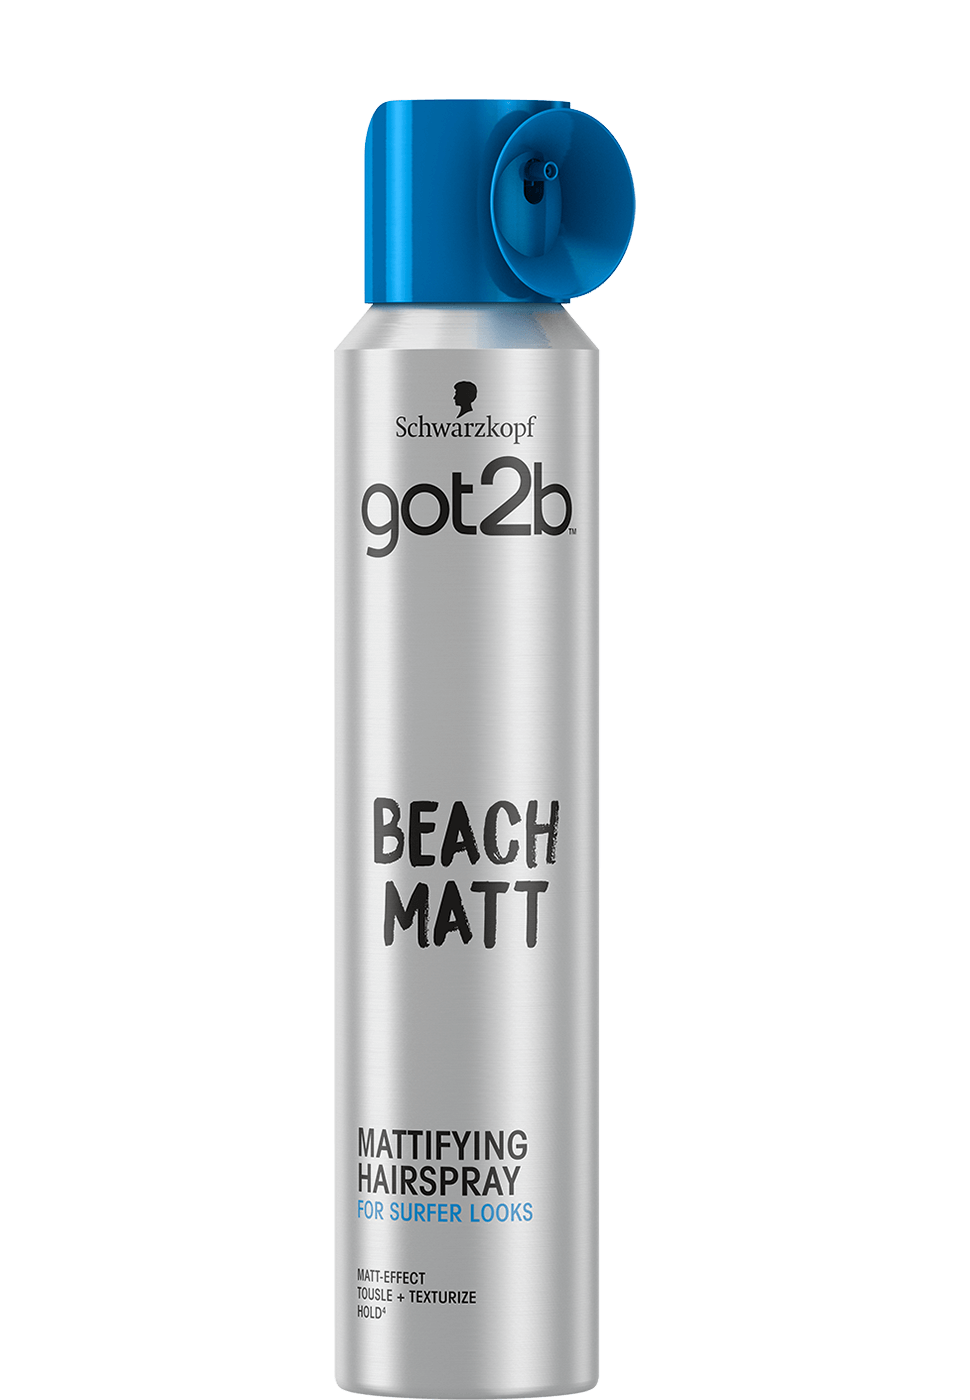 got2b_com_beach_matt_hairspray_970x1400